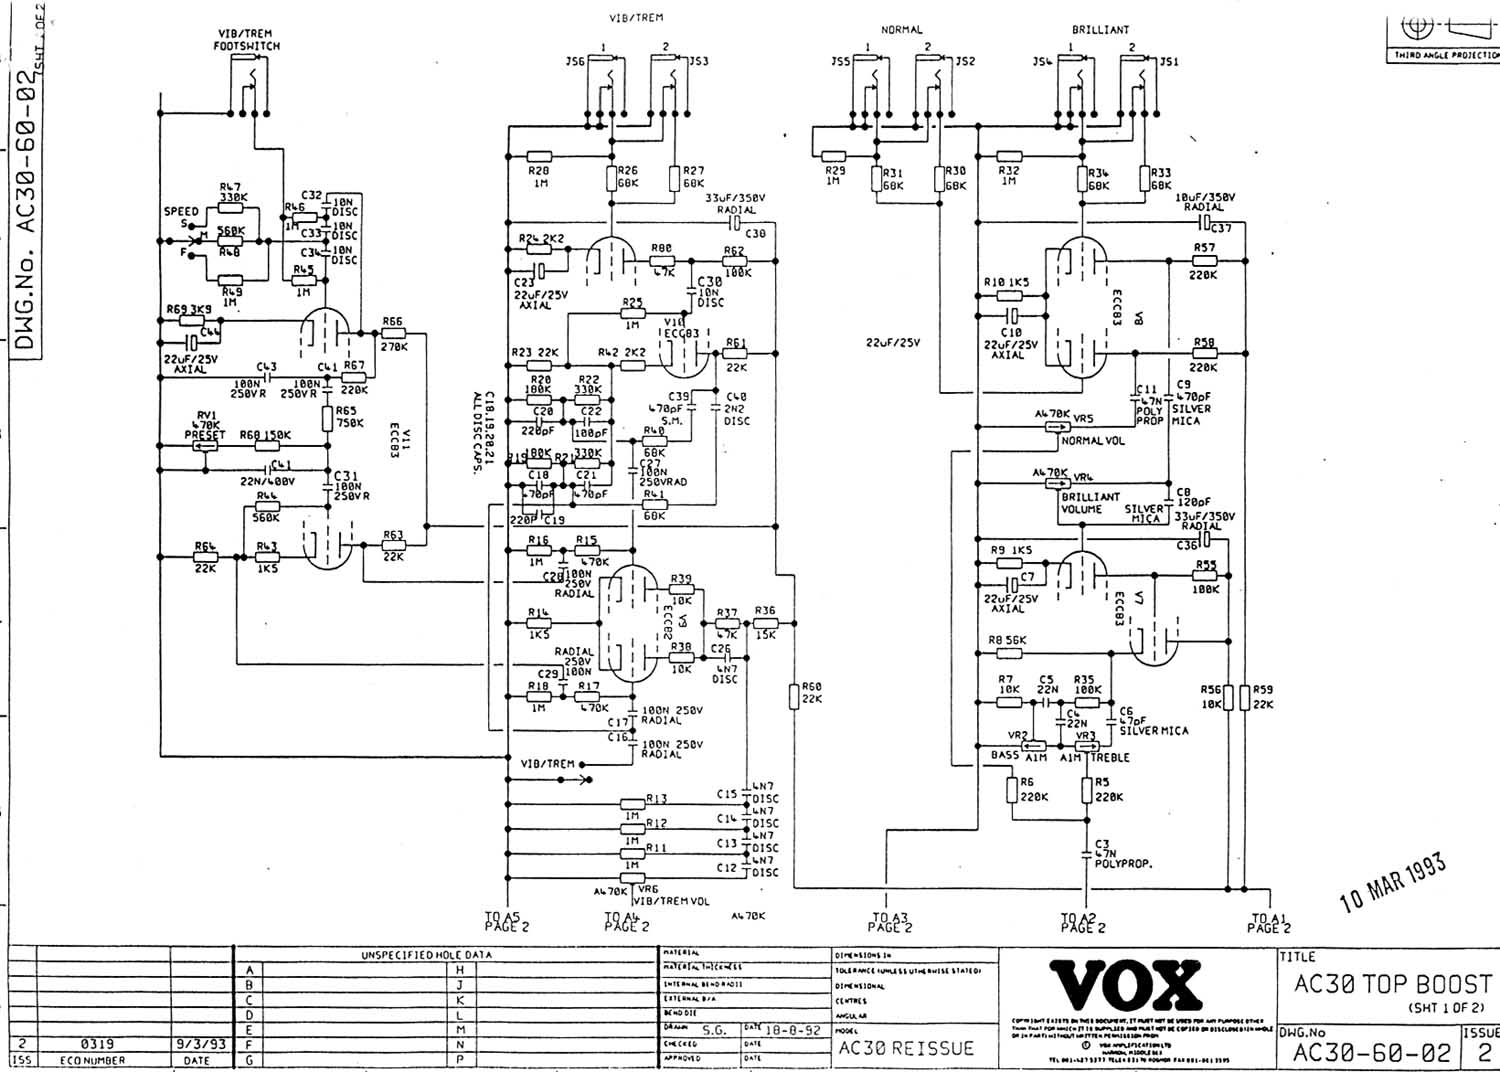 Pleasant Vox Vintage Circuit Diagrams Wiring 101 Vieworaxxcnl